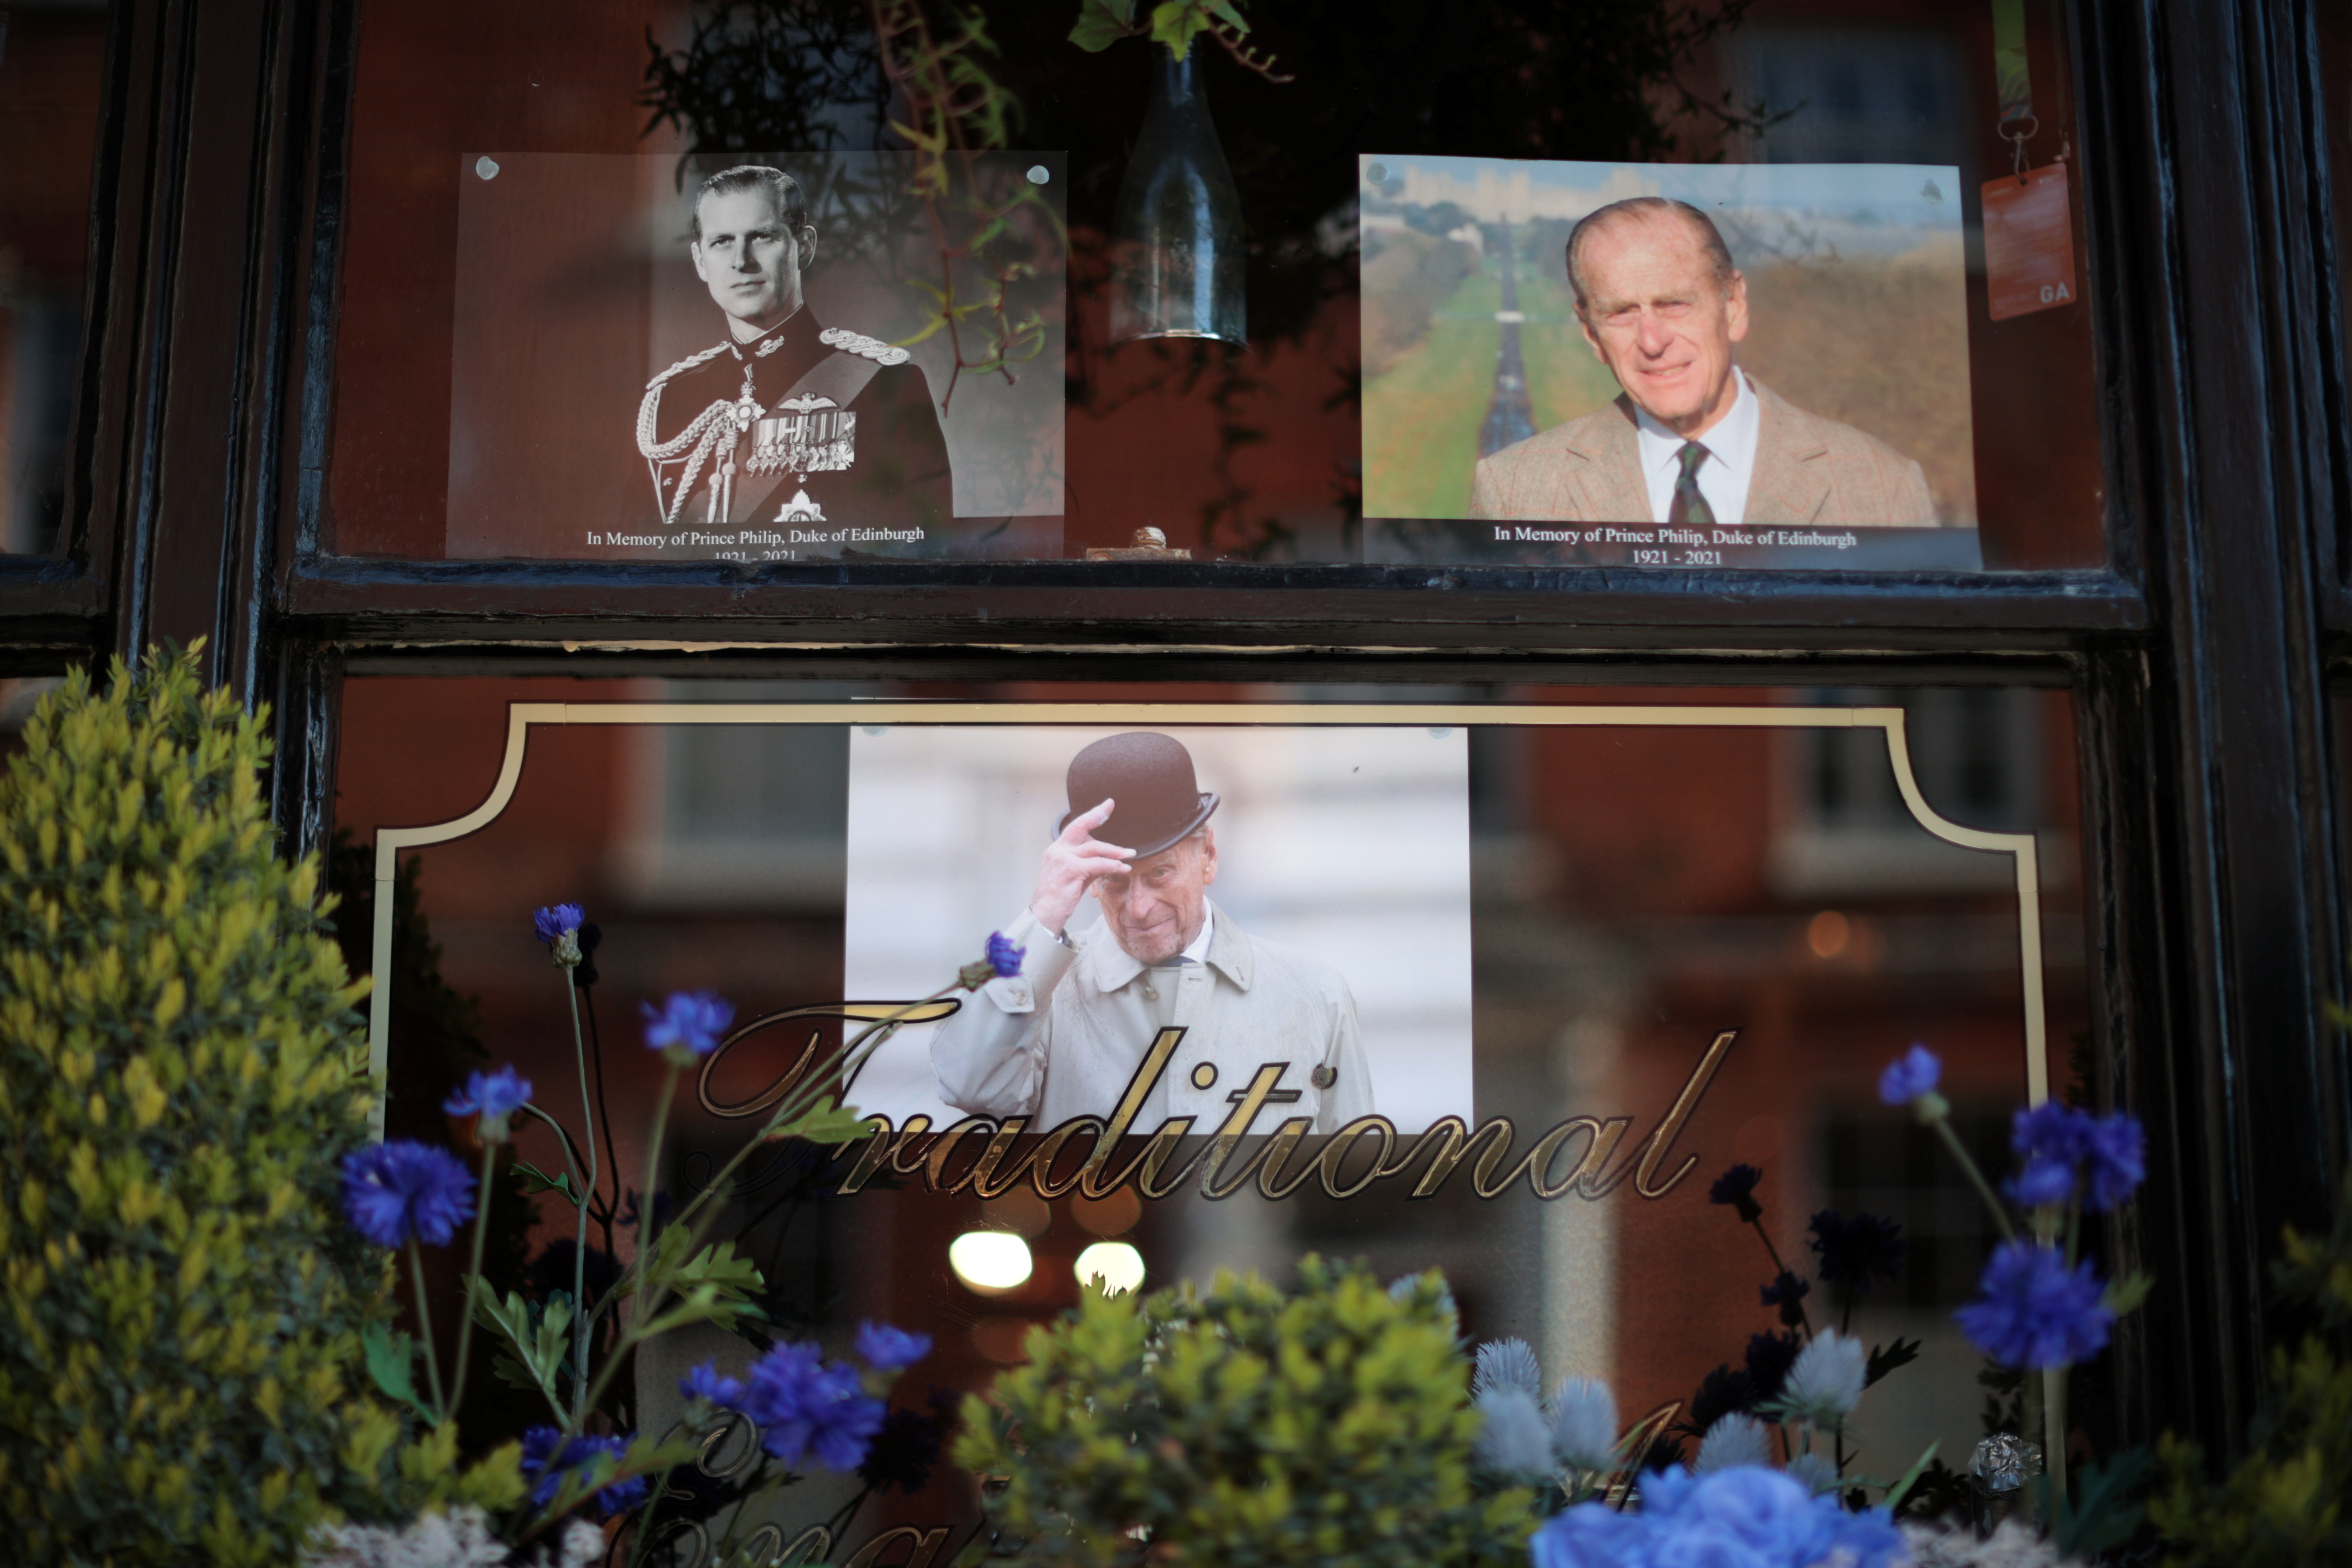 Pictures of Britain's Prince Philip, husband of Queen Elizabeth, are seen at a window in Windsor, near London, Britain, April 15, 2021. REUTERS/Hannah McKay